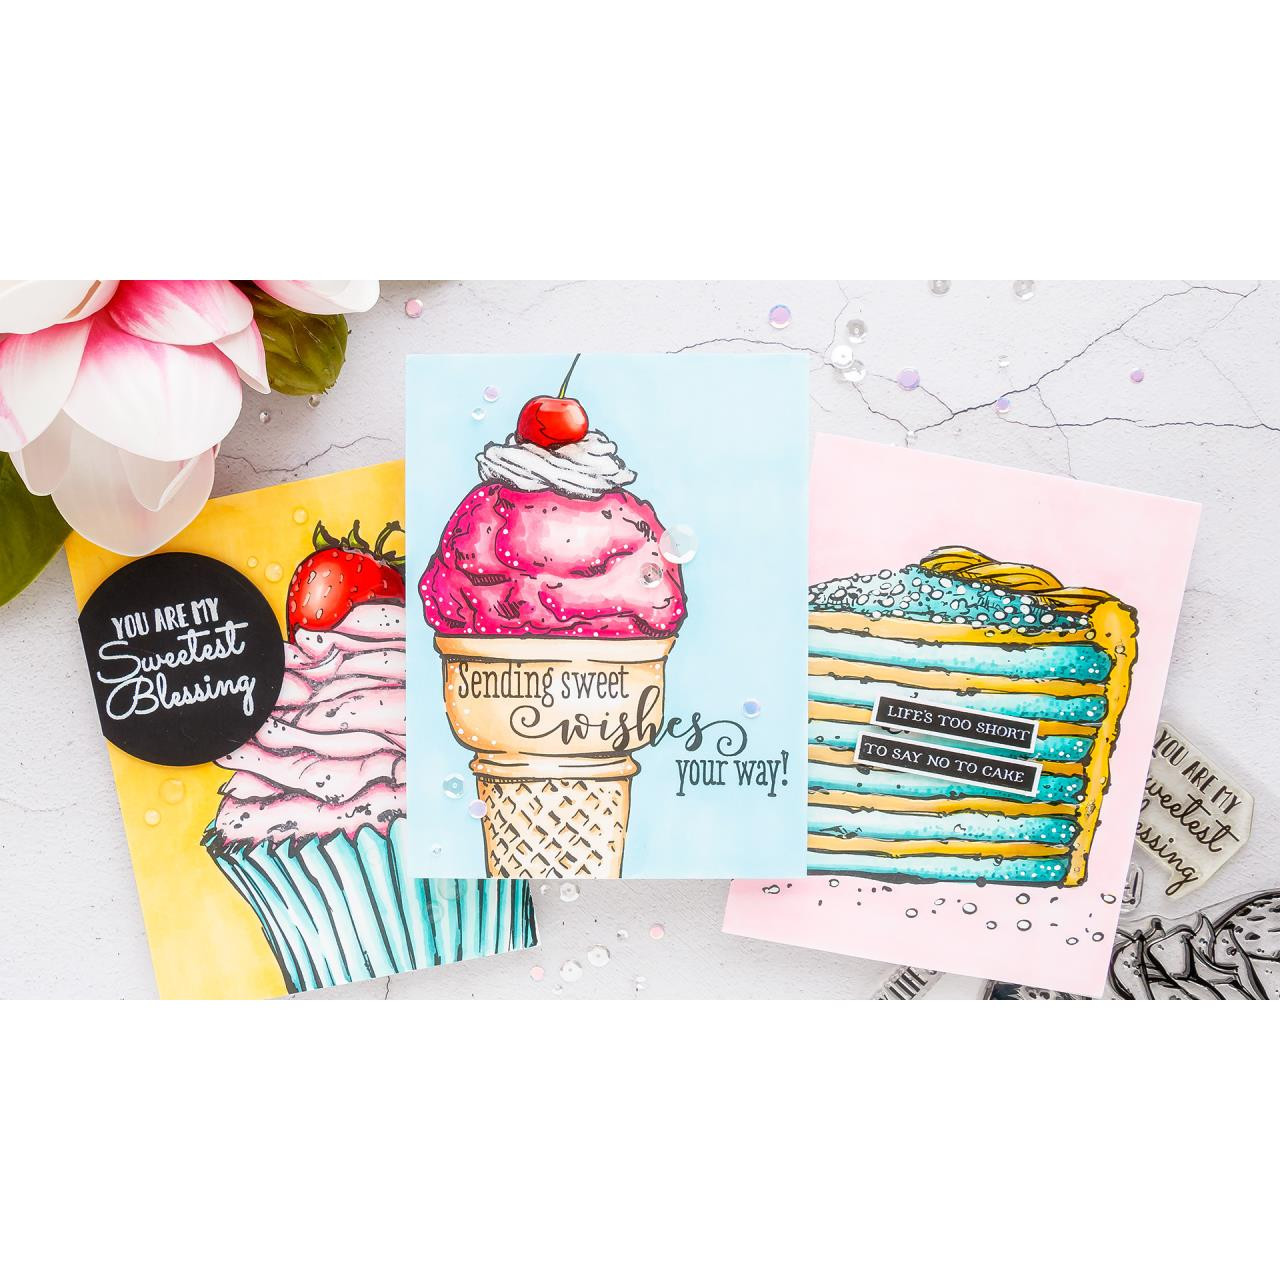 Sweet Friend Cupcake, Colorado Craft Company Clear Stamps - 857287008485